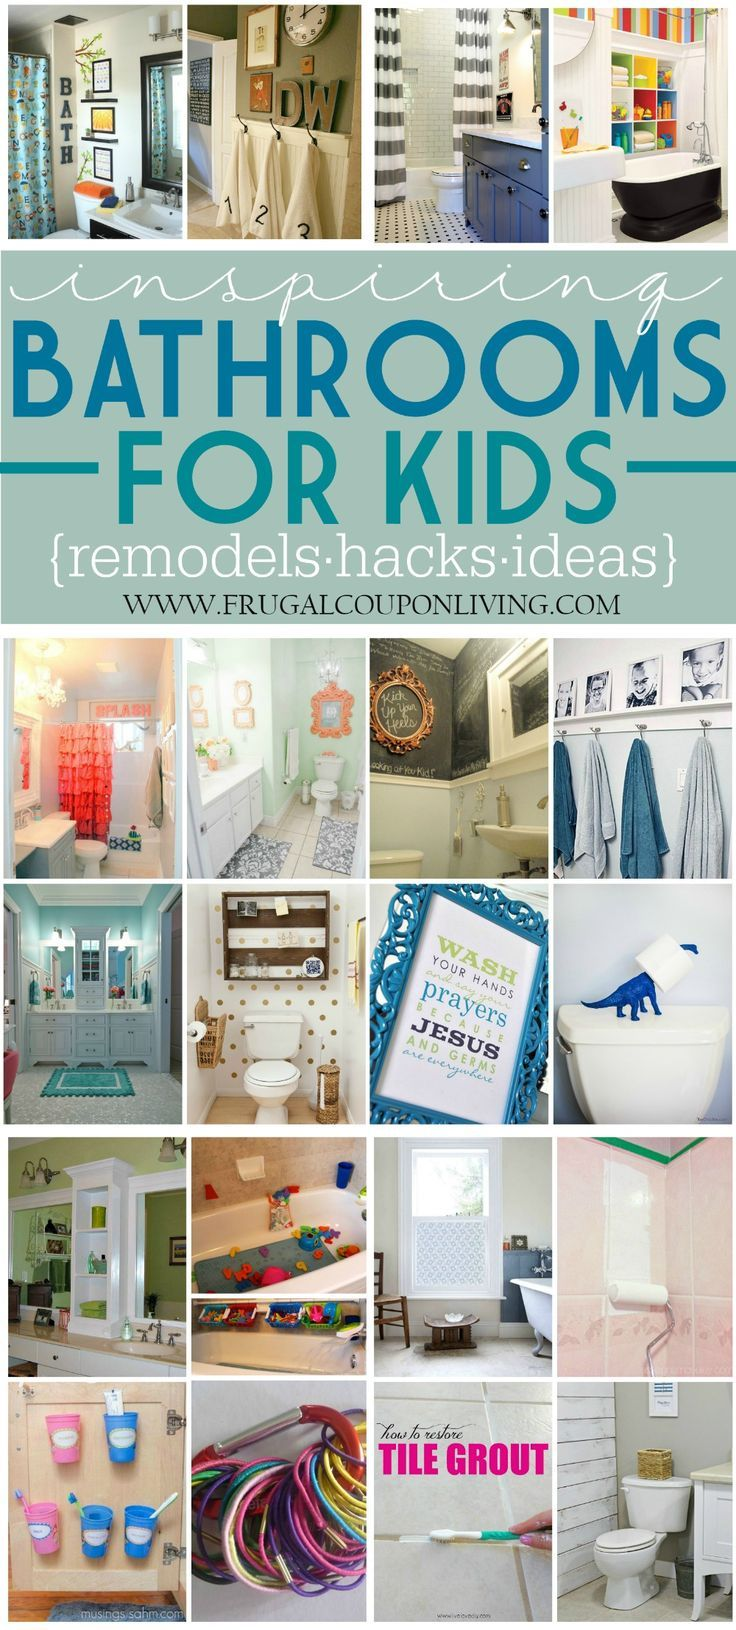 Inspiring Kids Bathrooms, Remodels and Hacks  Bathroom kids, Kid